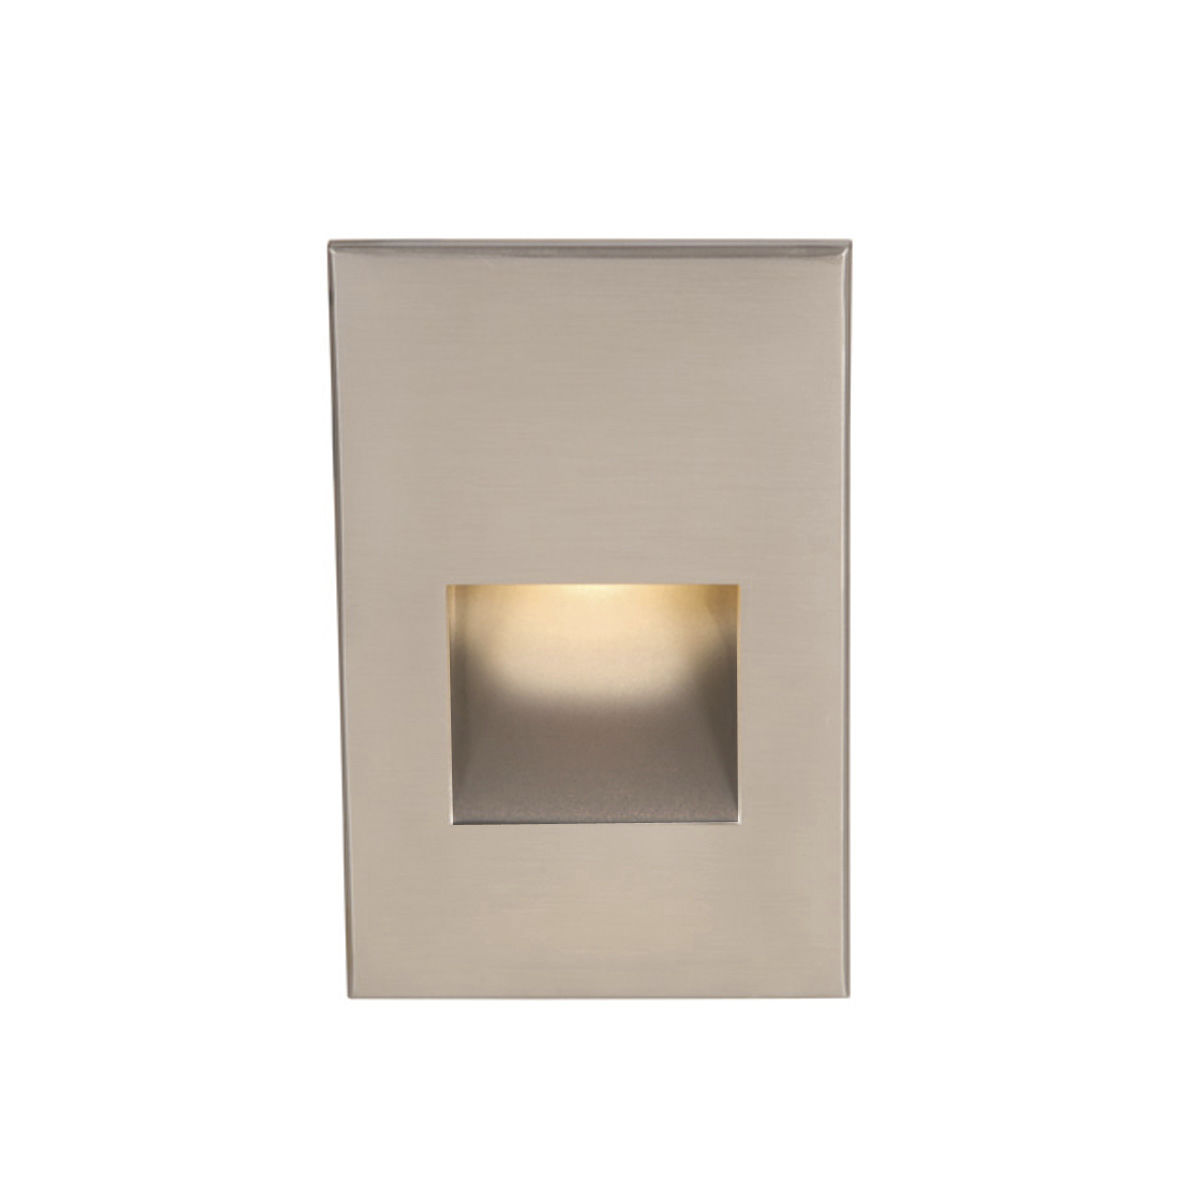 Recessed wall light fixture led rectangular outdoor wl 200 recessed wall light fixture led rectangular outdoor arubaitofo Image collections